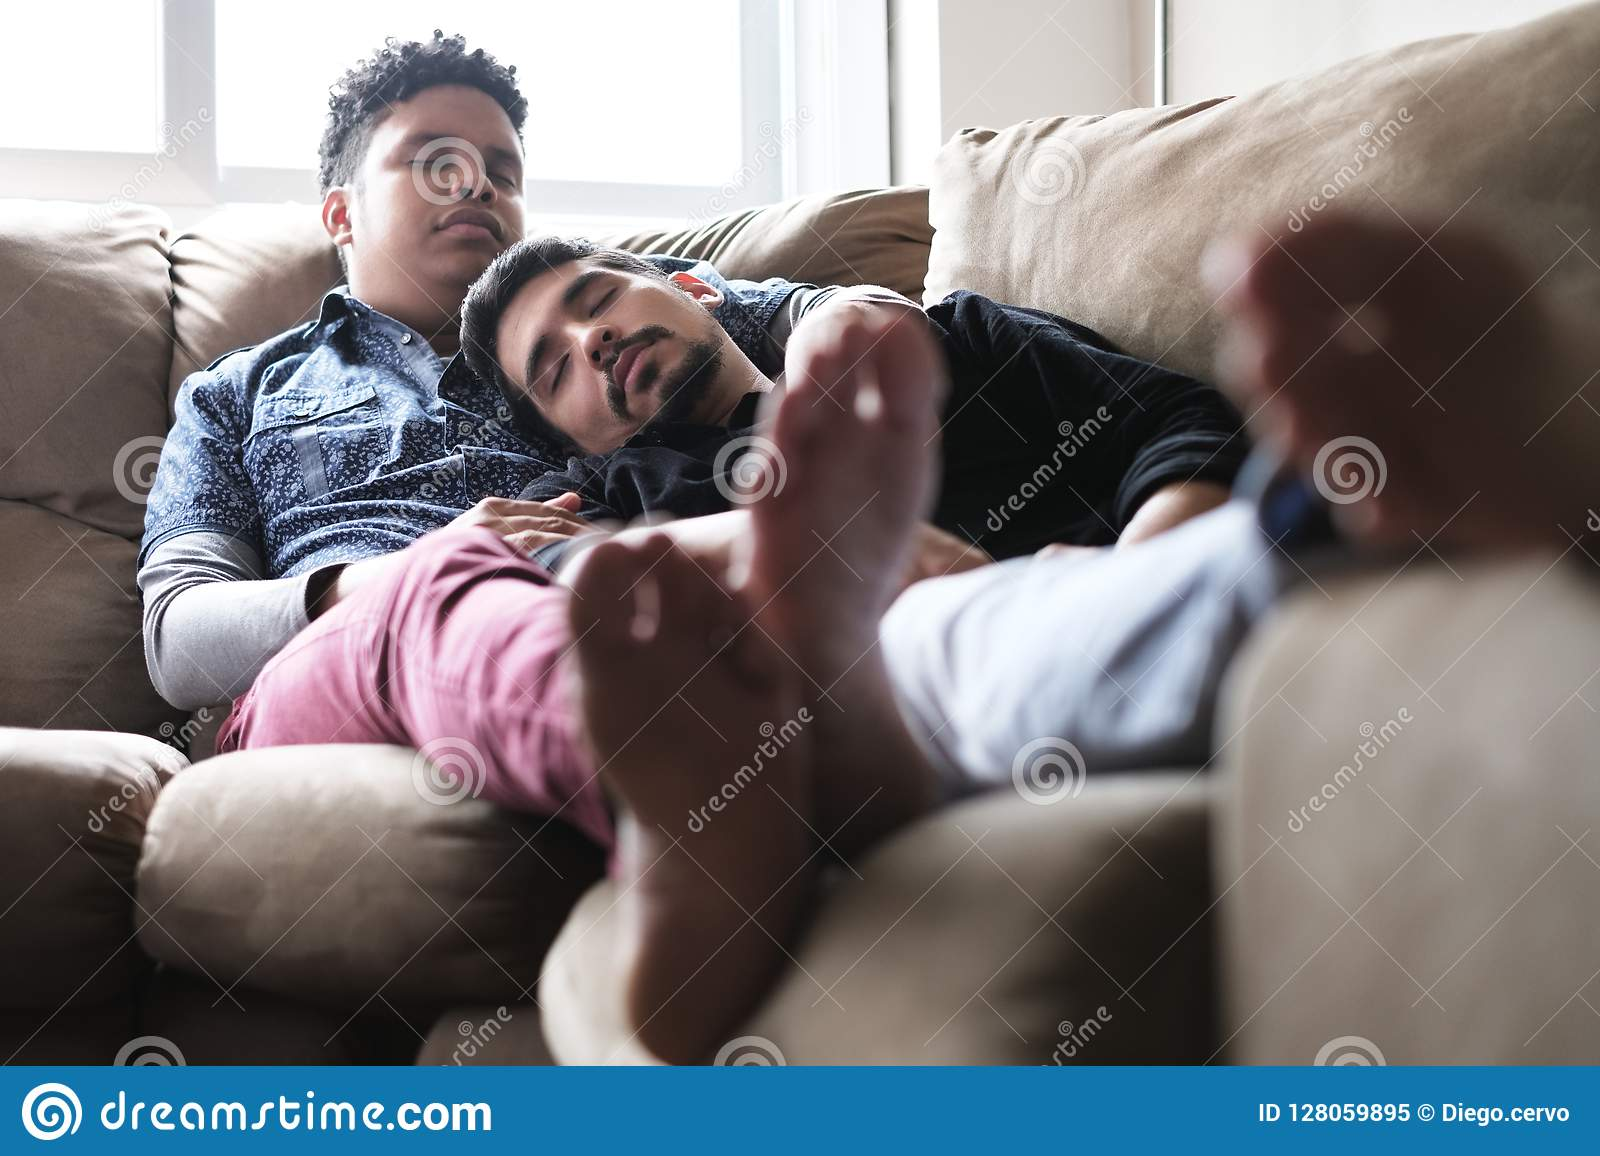 Sleeping men gay